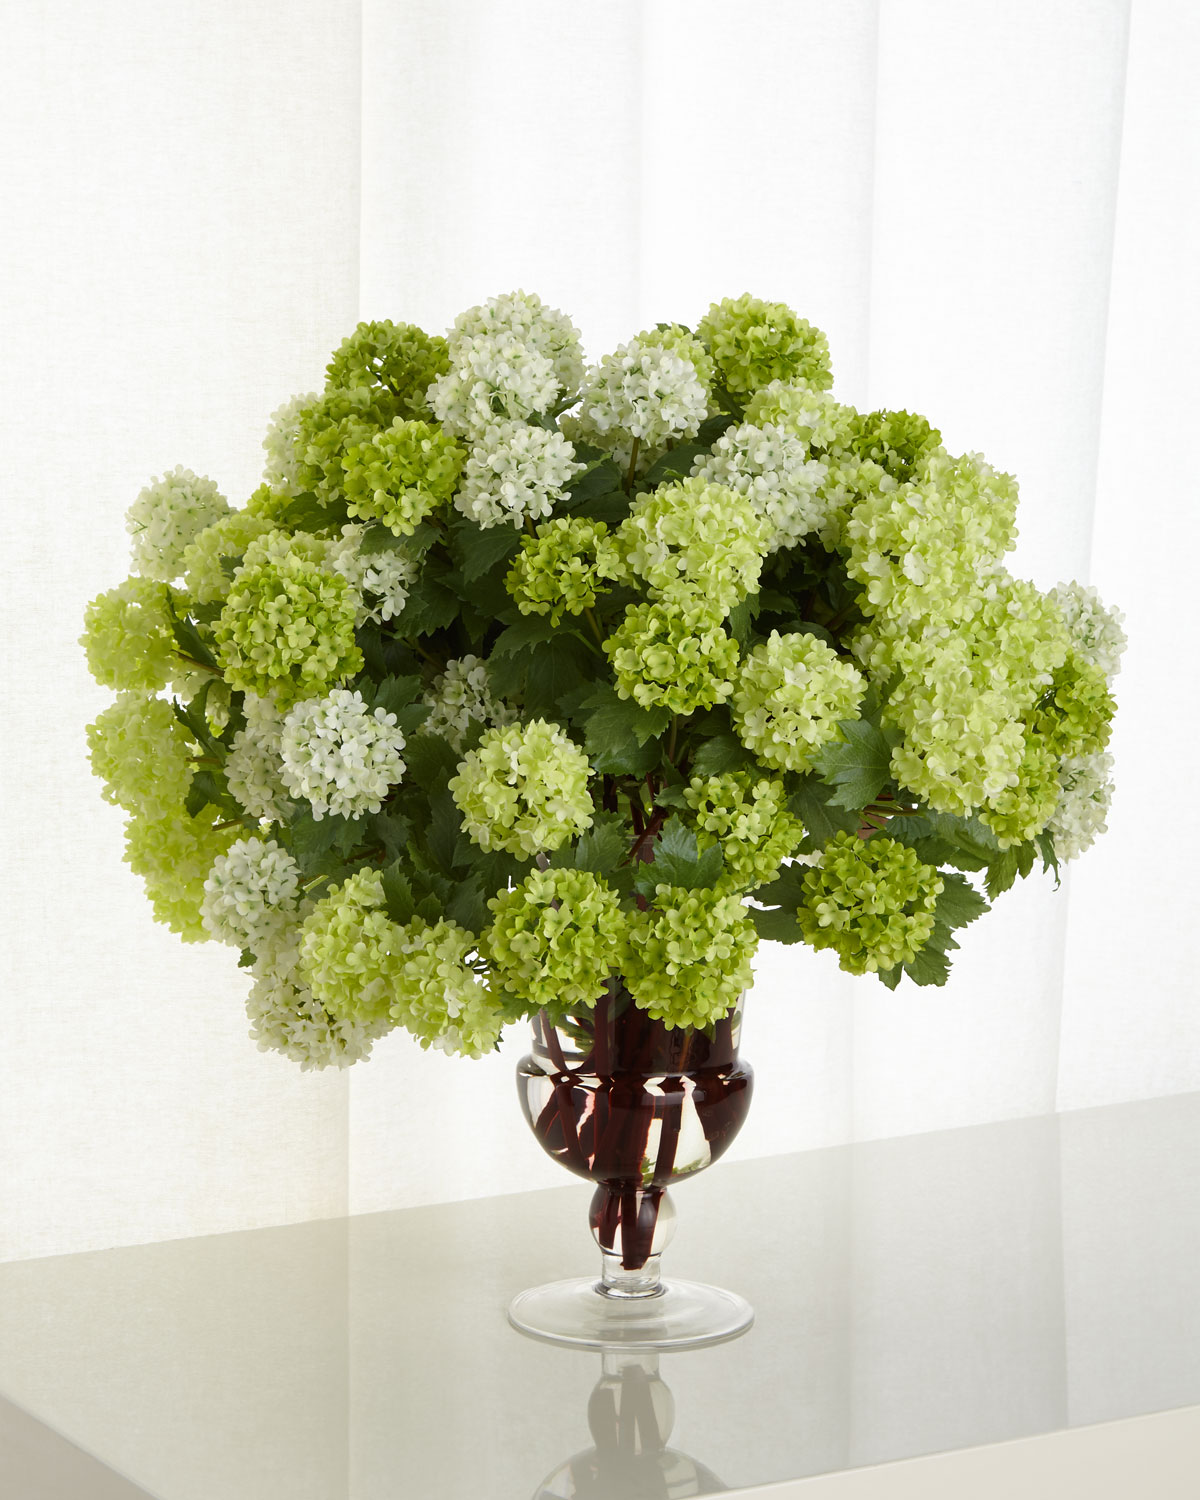 Ndi snowball hydrangea faux floral arrangement in glass urn neiman snowball hydrangea faux floral arrangement in glass urn mightylinksfo